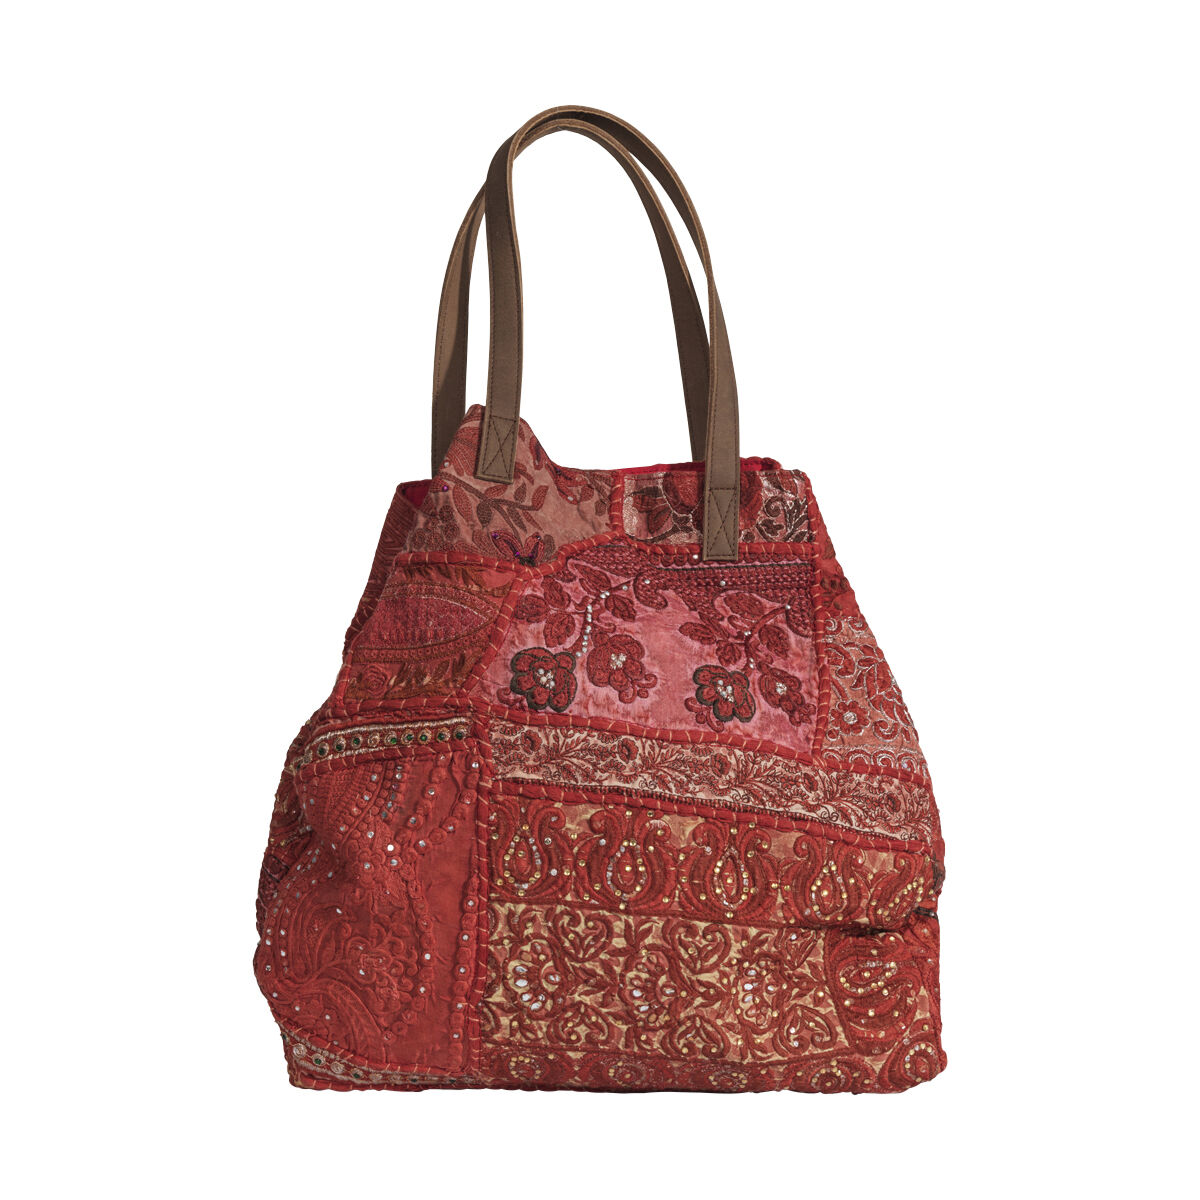 0037396_shoulder-bag-ritikka-rusty